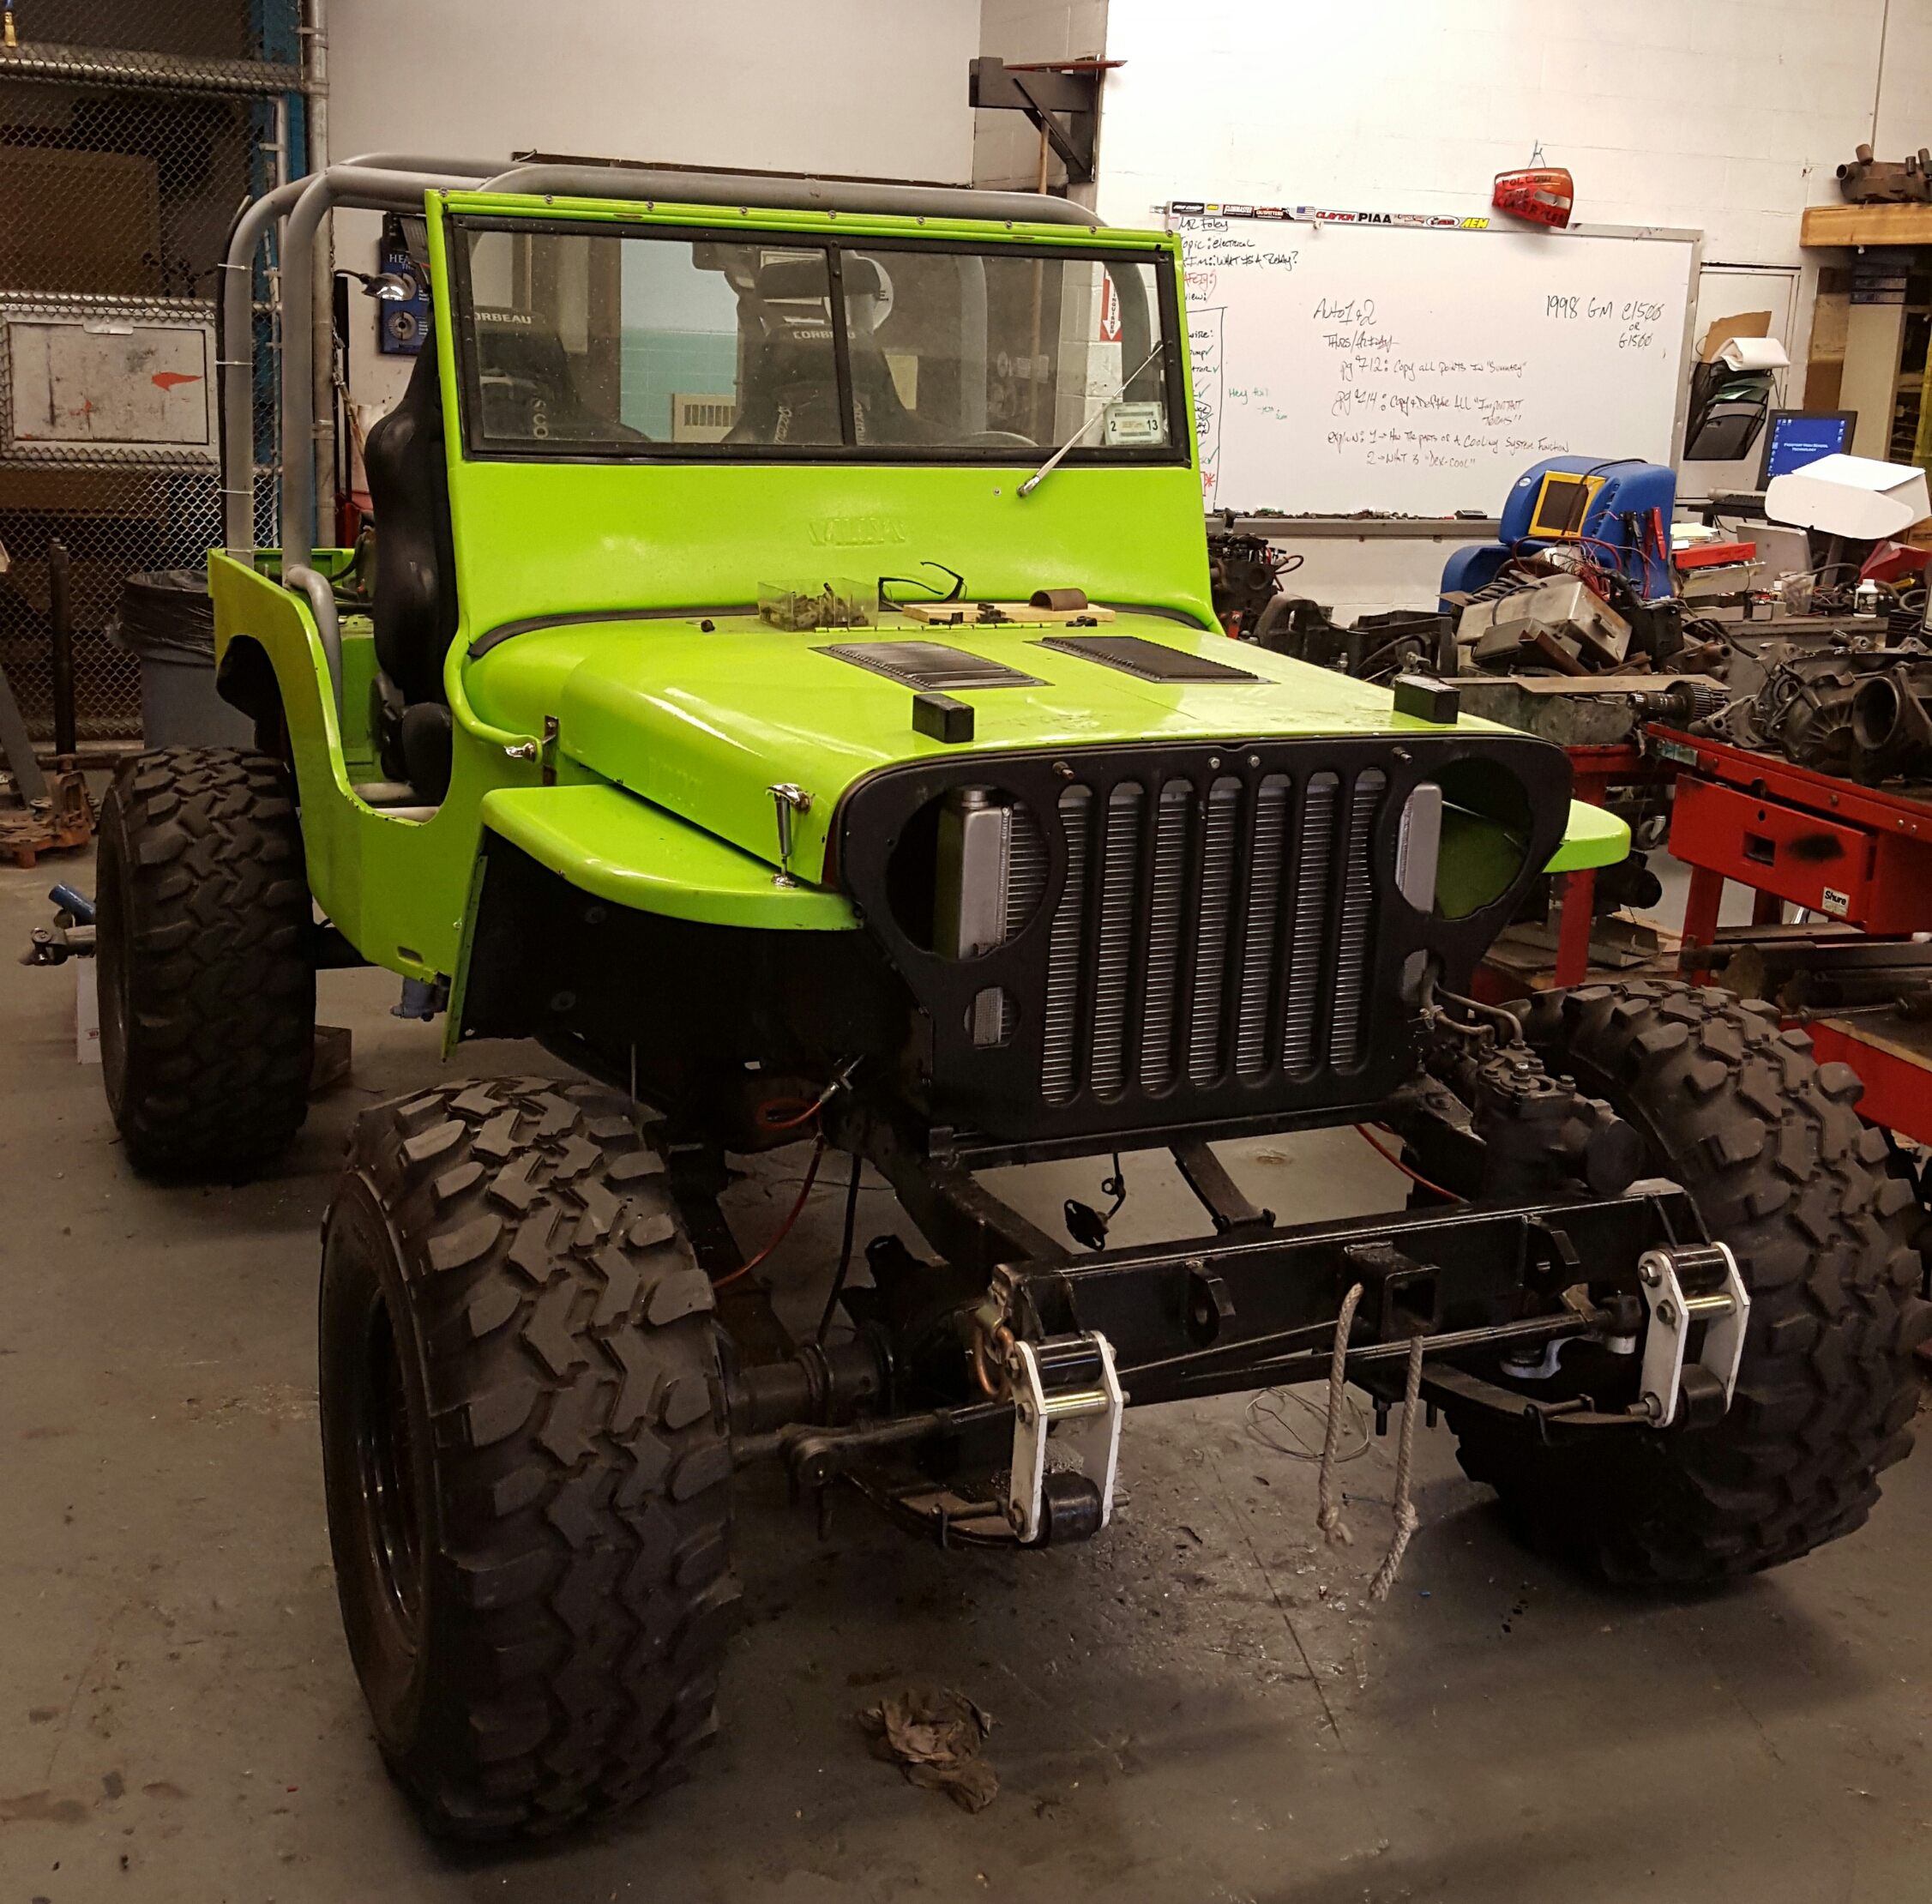 1946 Willys Jeep currently being worked on in my shop ...